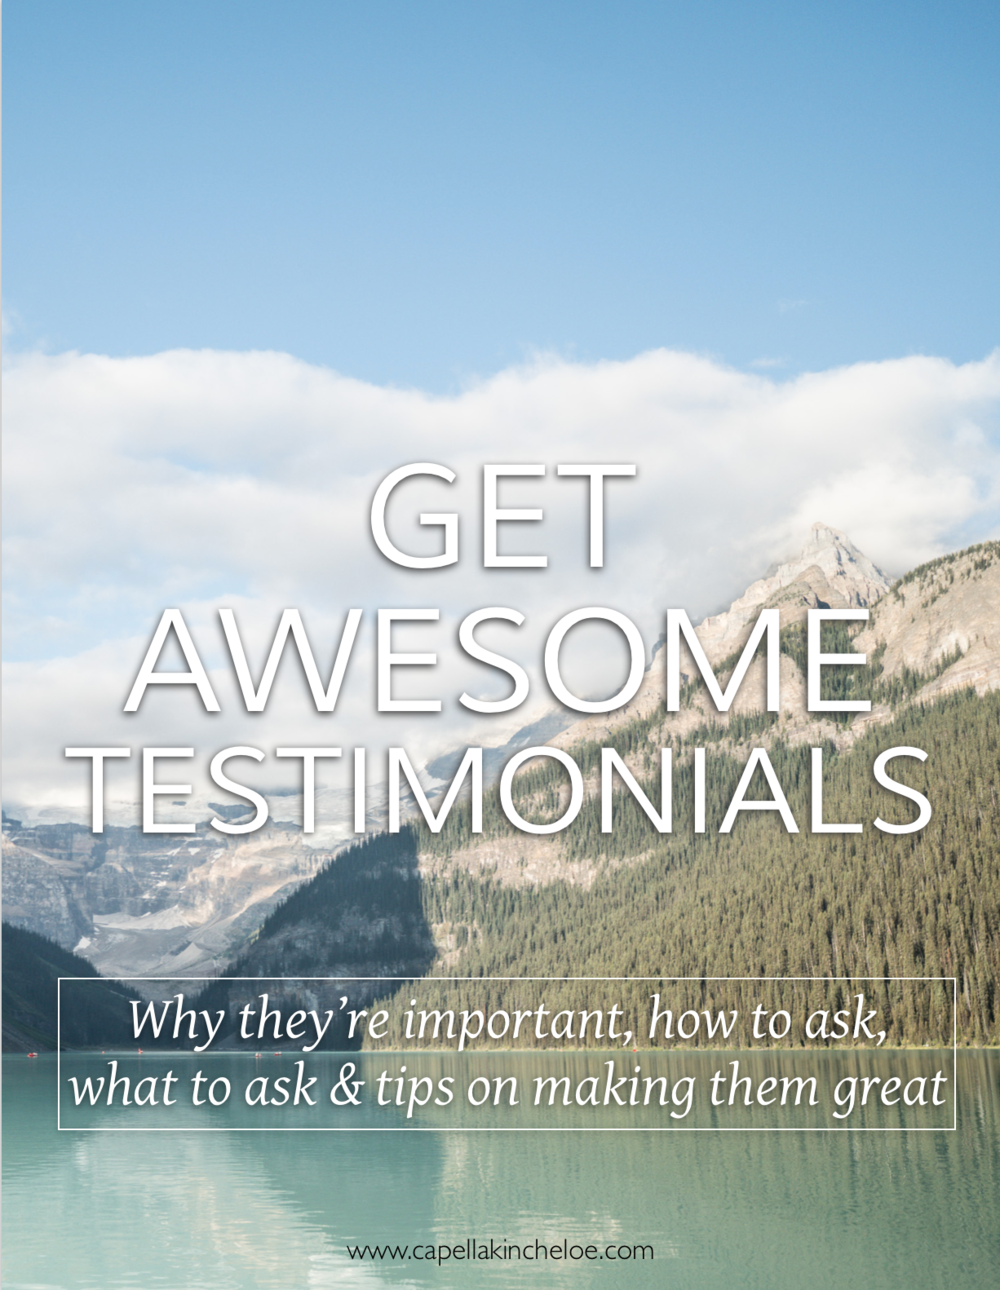 Testimonials can boost trust, legitimacy, and sales for your interior design business.  Learn how to get testimonials from clients.  #interiordesignbusiness #cktradesecrets #clienttestimonials